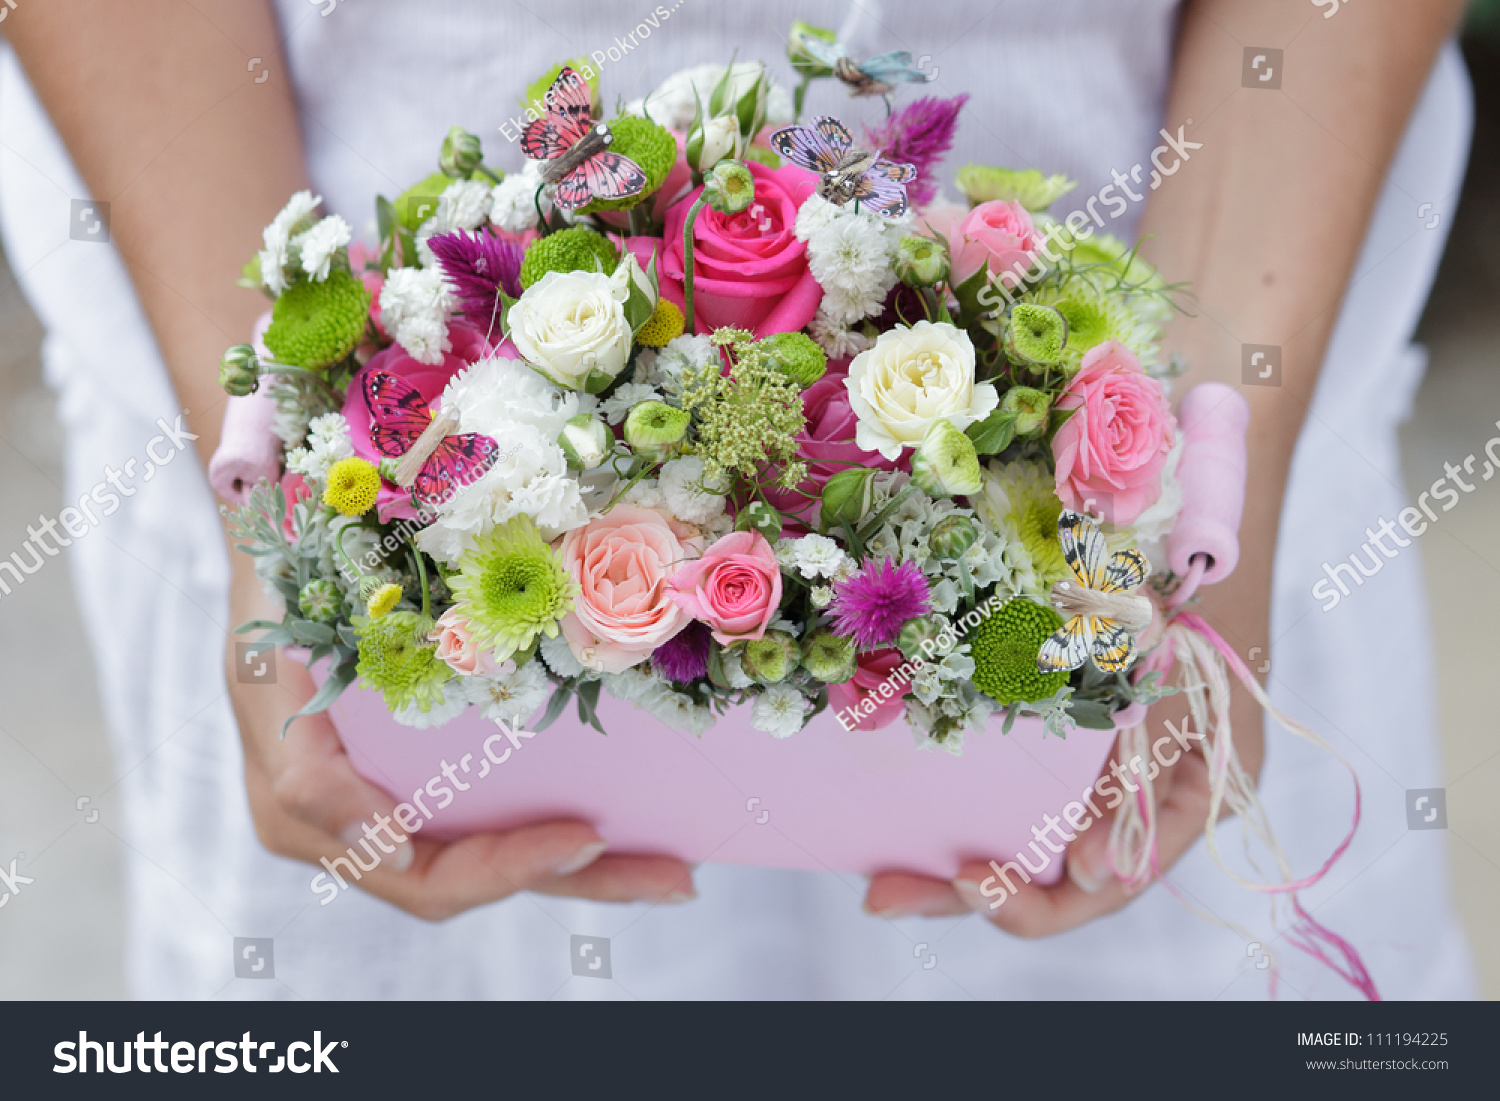 Bridal Wedding Bouquet Of Flowers In White Pink And Green Ez Canvas